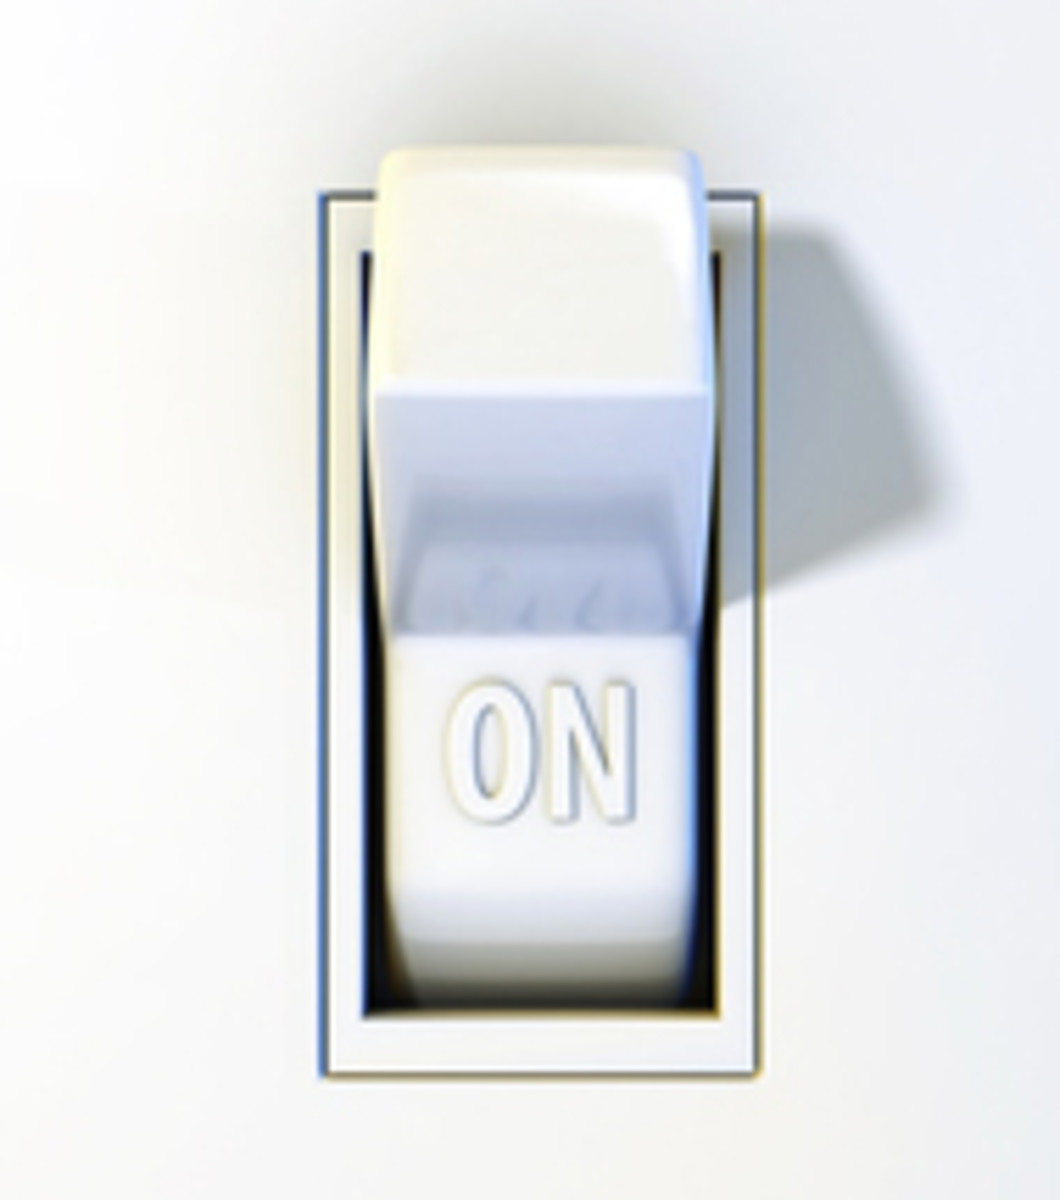 light switch_cropped